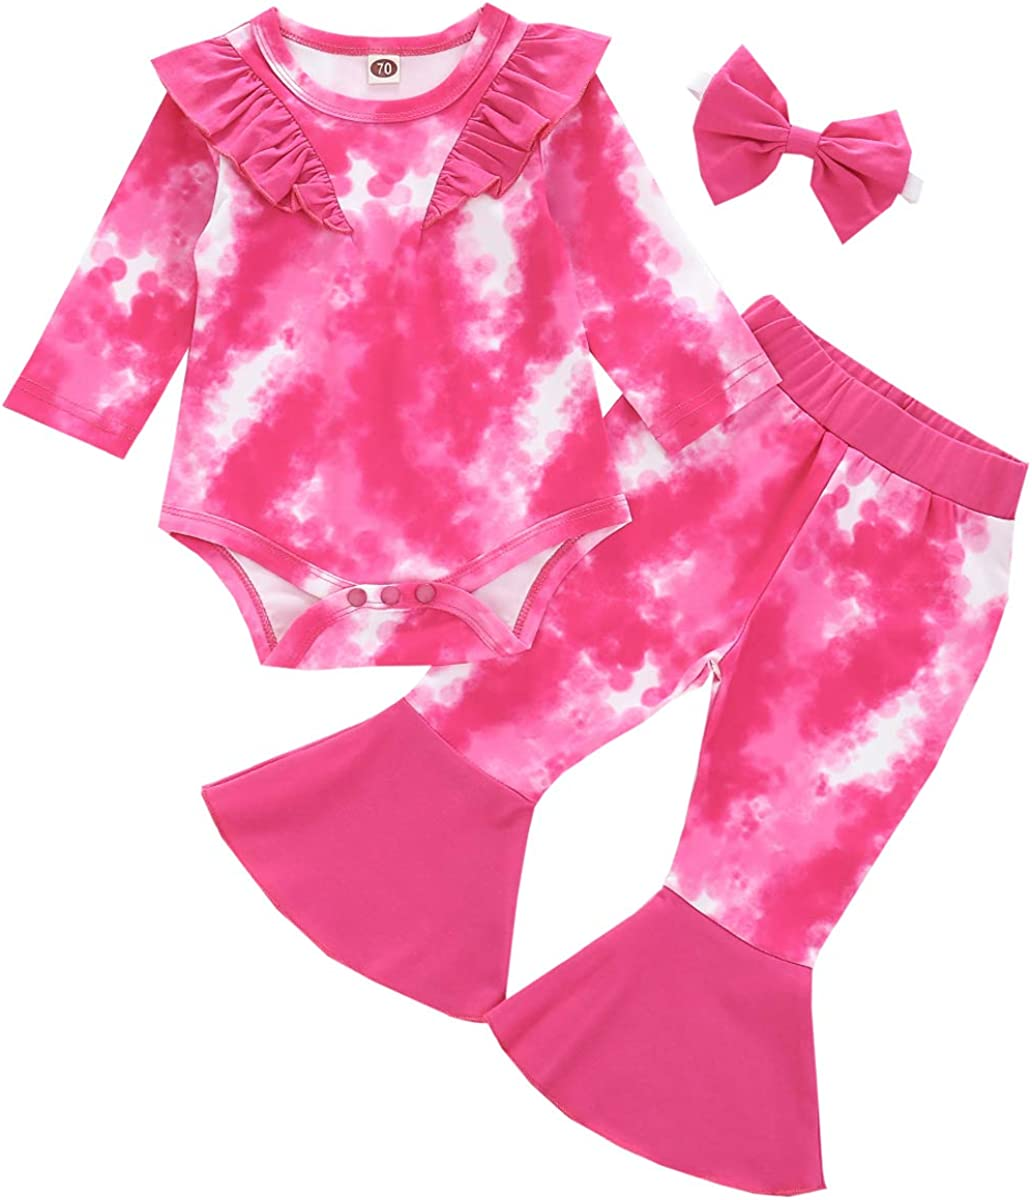 Coralup Sales Baby Girls Tie Dye Ruffle Outfits Limited time for free shipping Rompe 3PCS Bell-Bottom